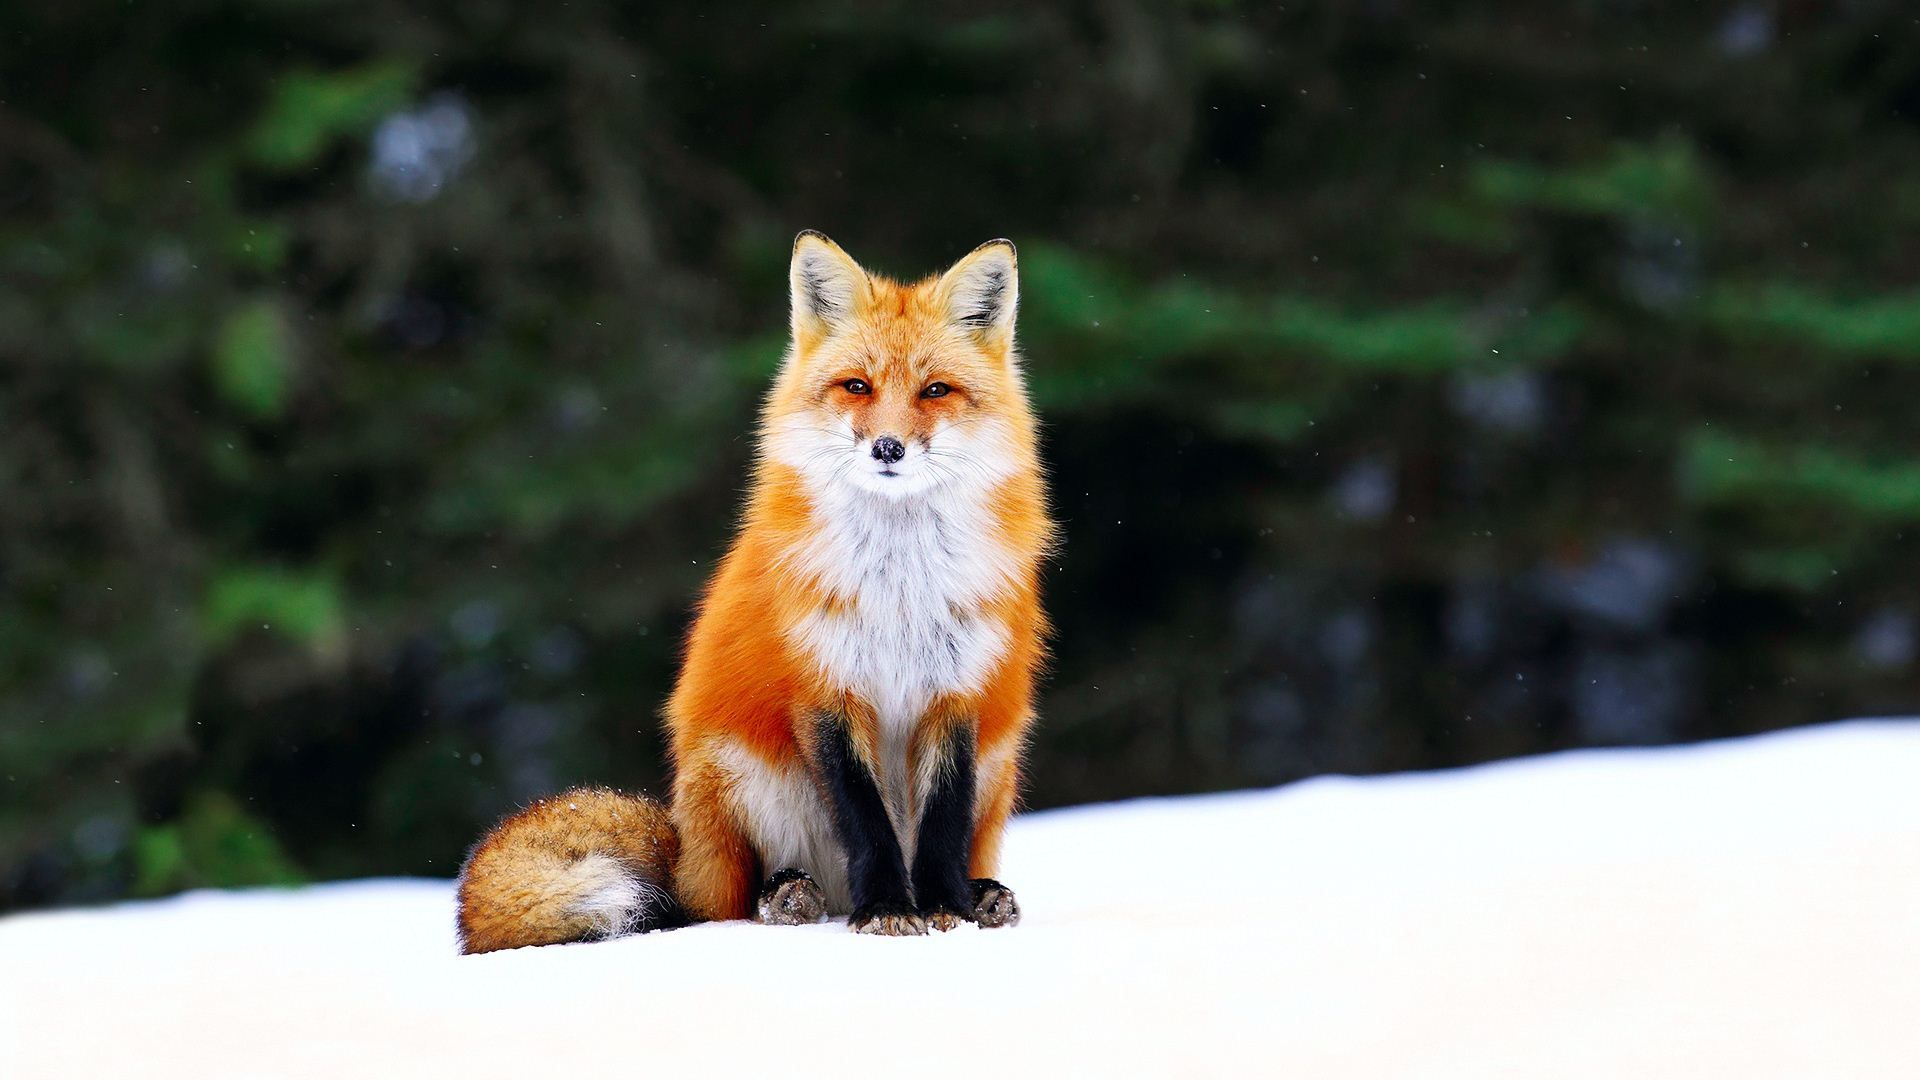 Cute Orange Fox wallpaper Fox in snow, Cute animals